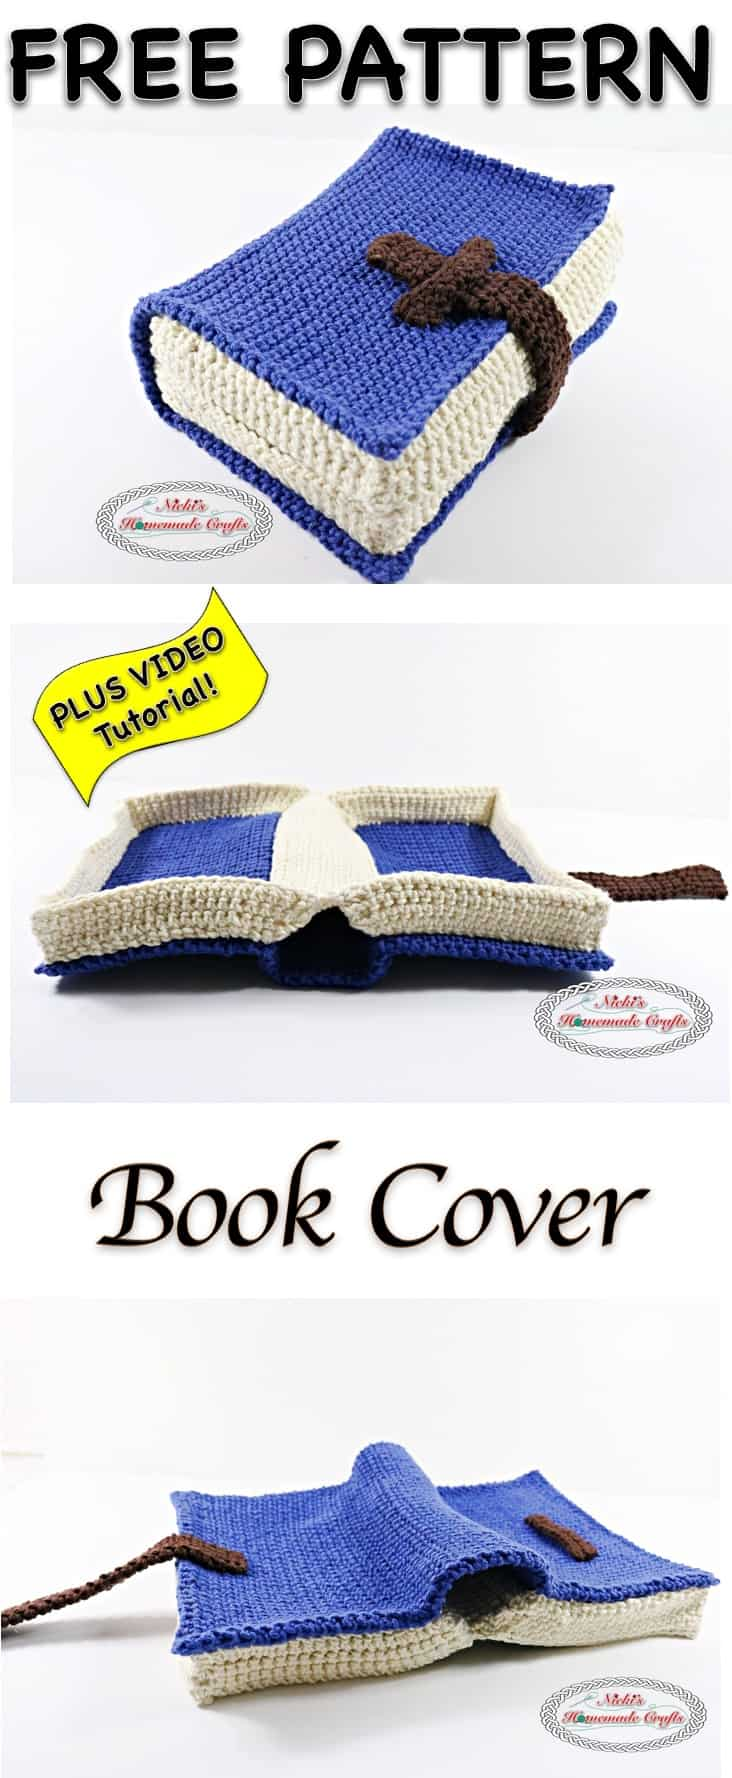 Book Cover - Free Crochet Pattern by Nicki's Homemade Crafts